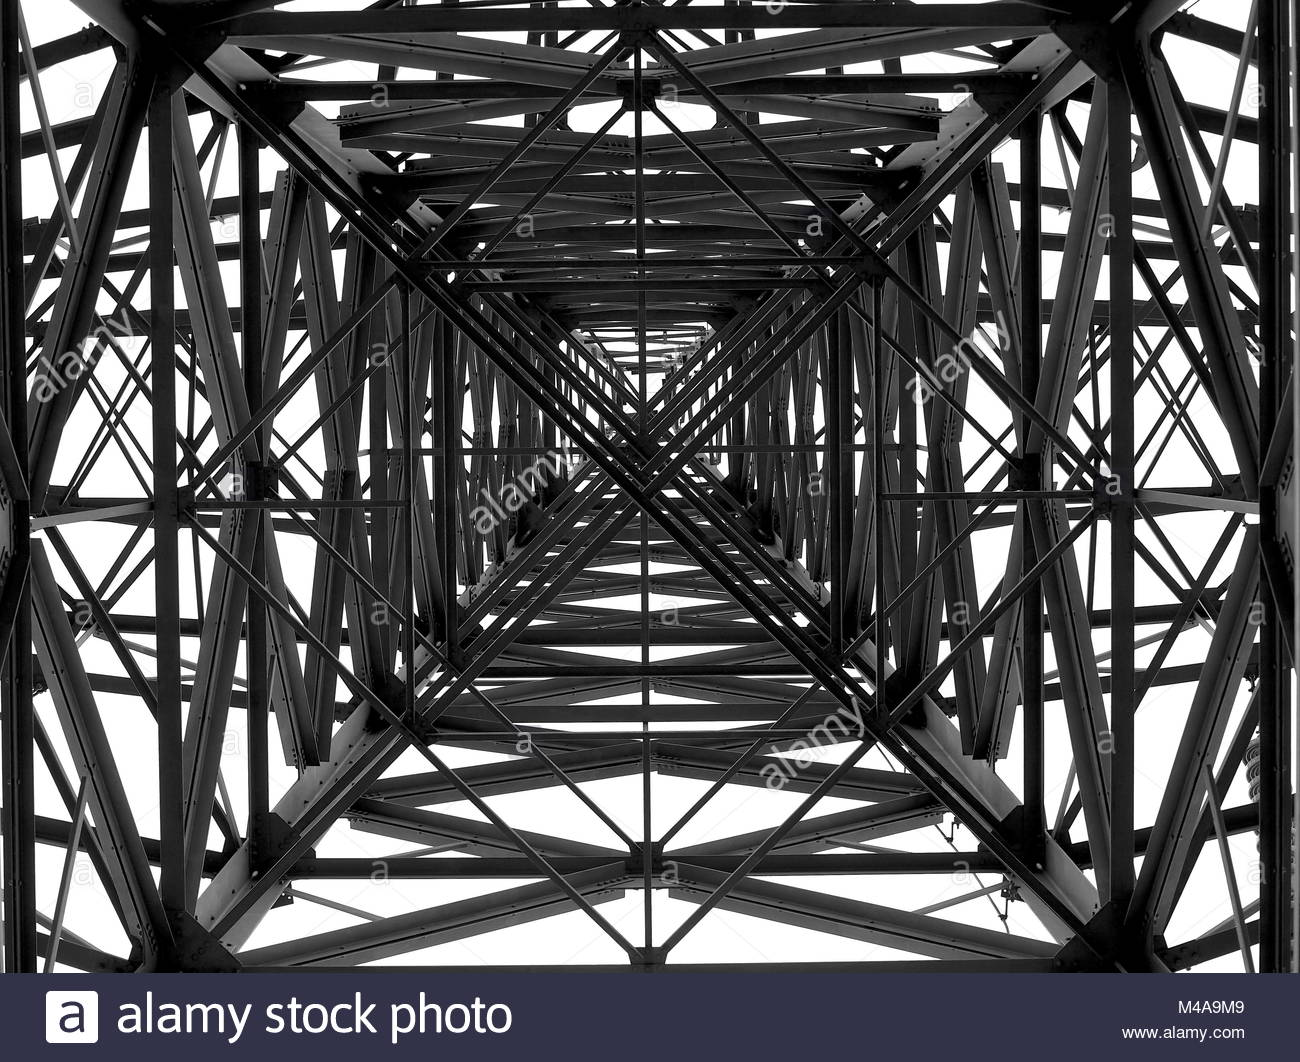 Image Of A Pylon Taken from Below Looking Straight Up April 2017 - Stock Image